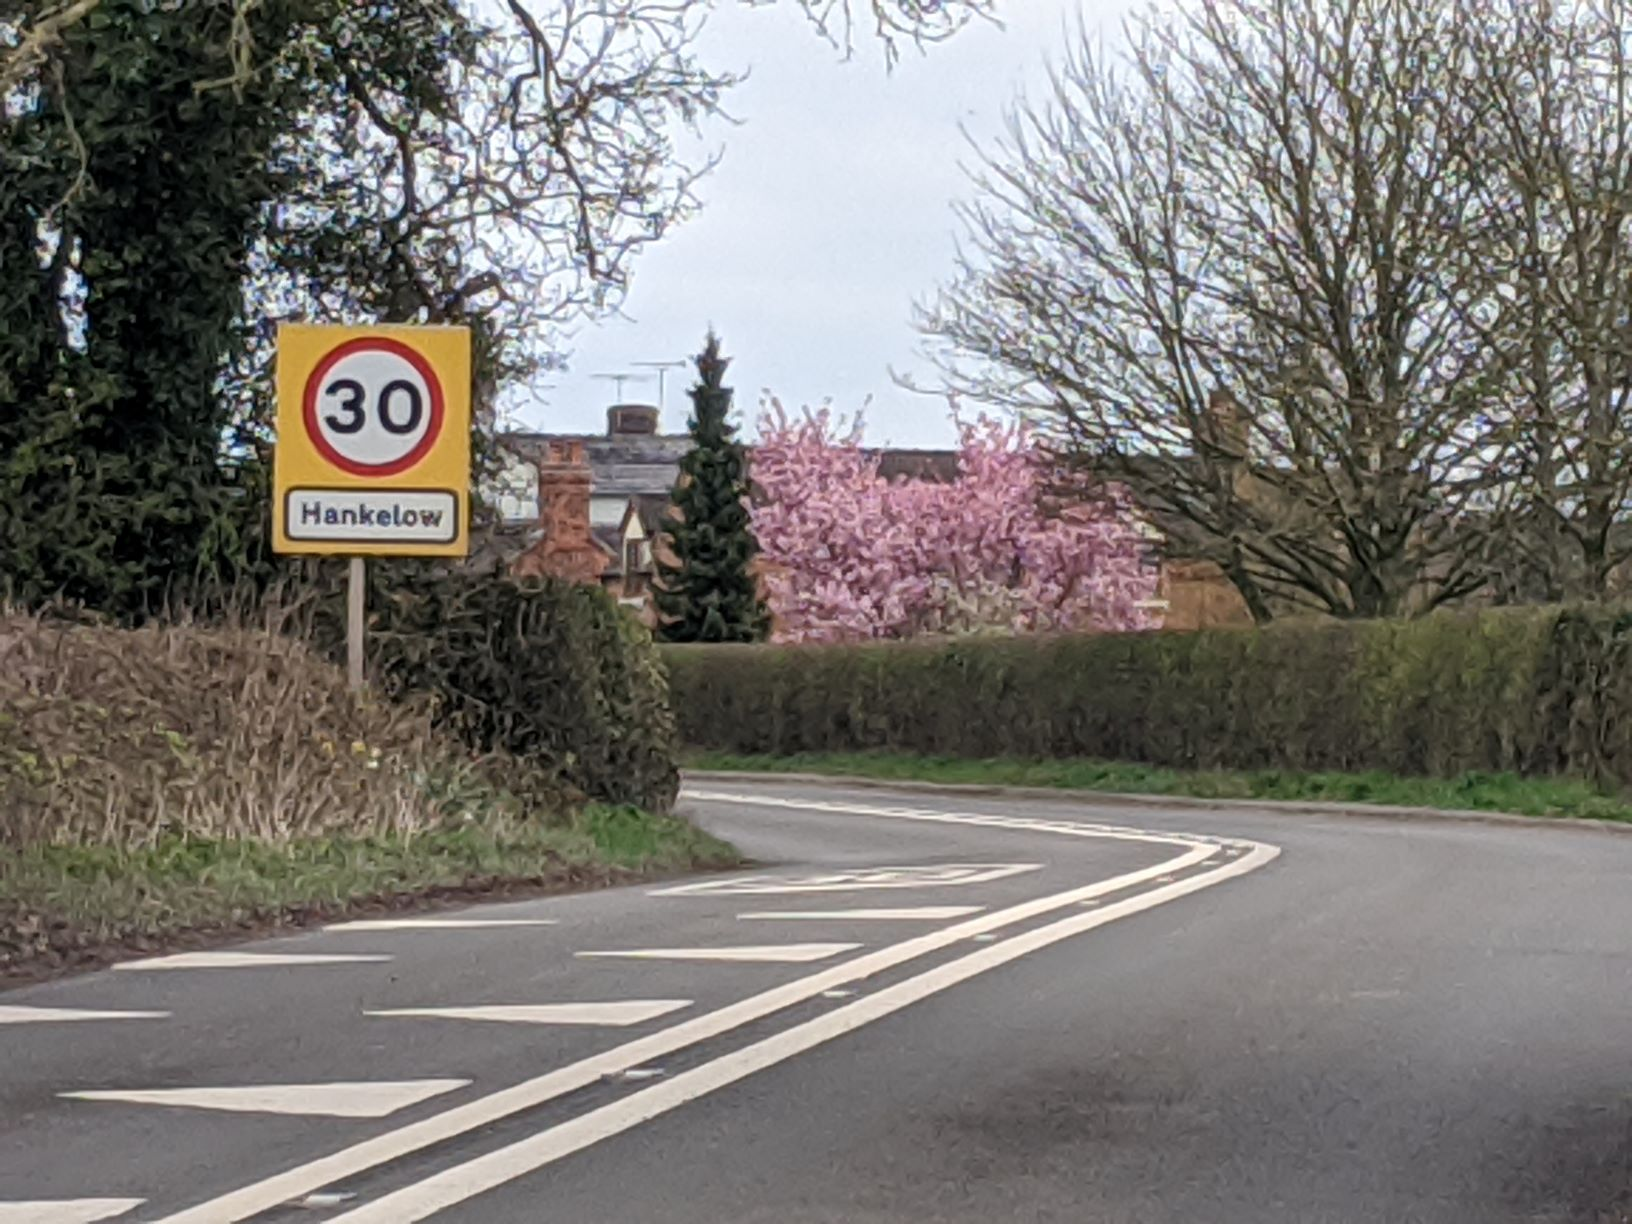 South approach to the village, 31st March 2020